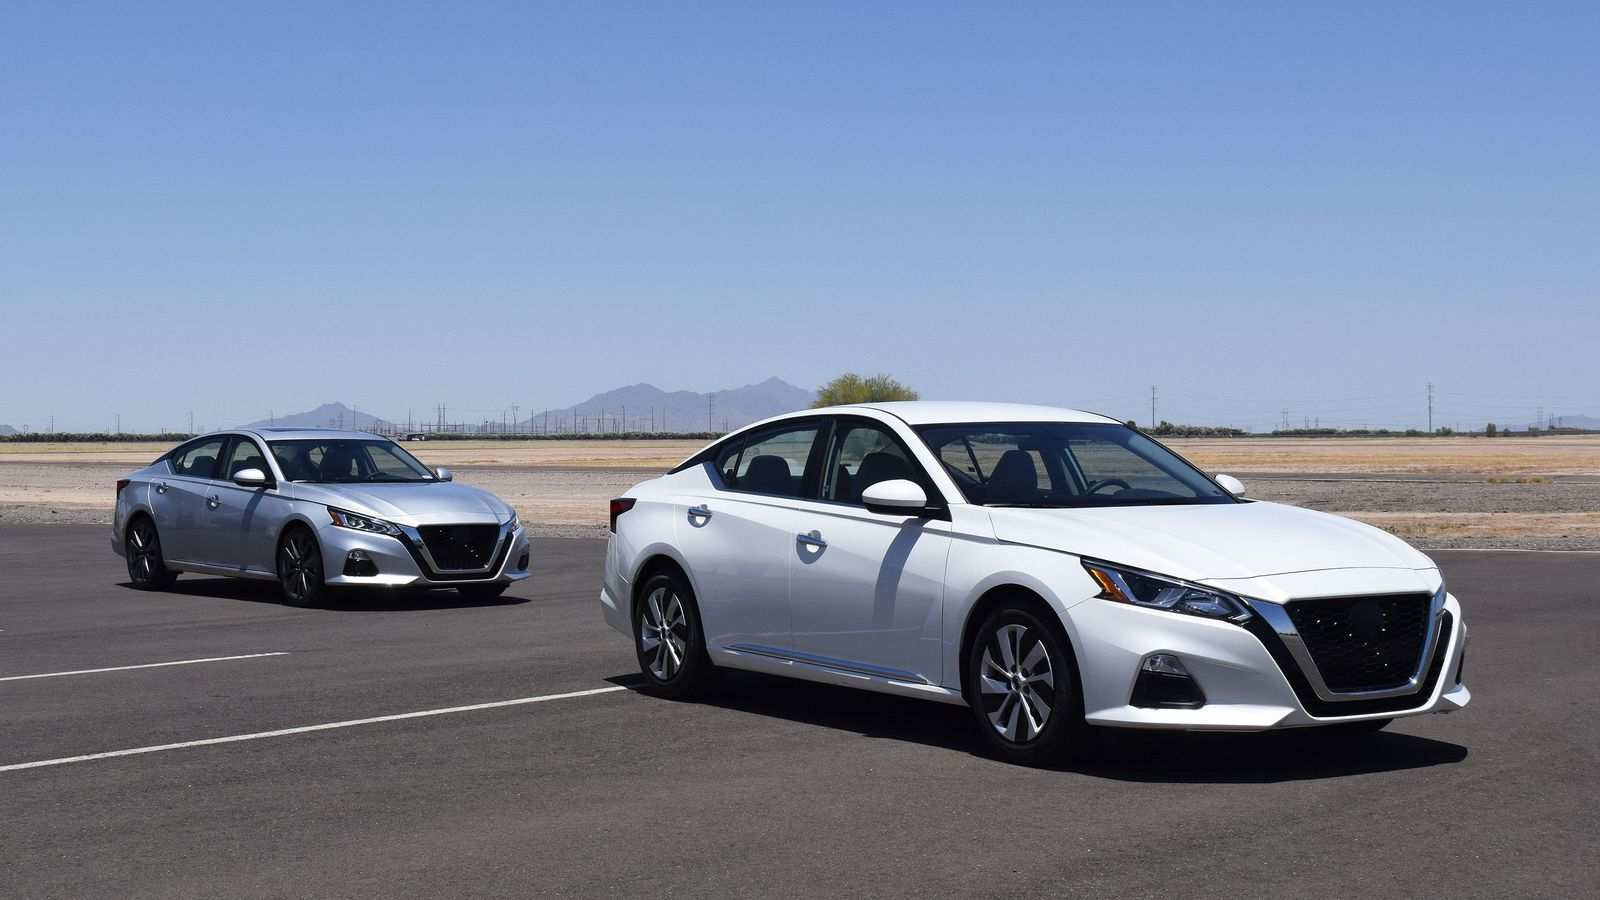 27 Gallery of The 2019 Nissan Altima Horsepower First Drive Redesign by The 2019 Nissan Altima Horsepower First Drive